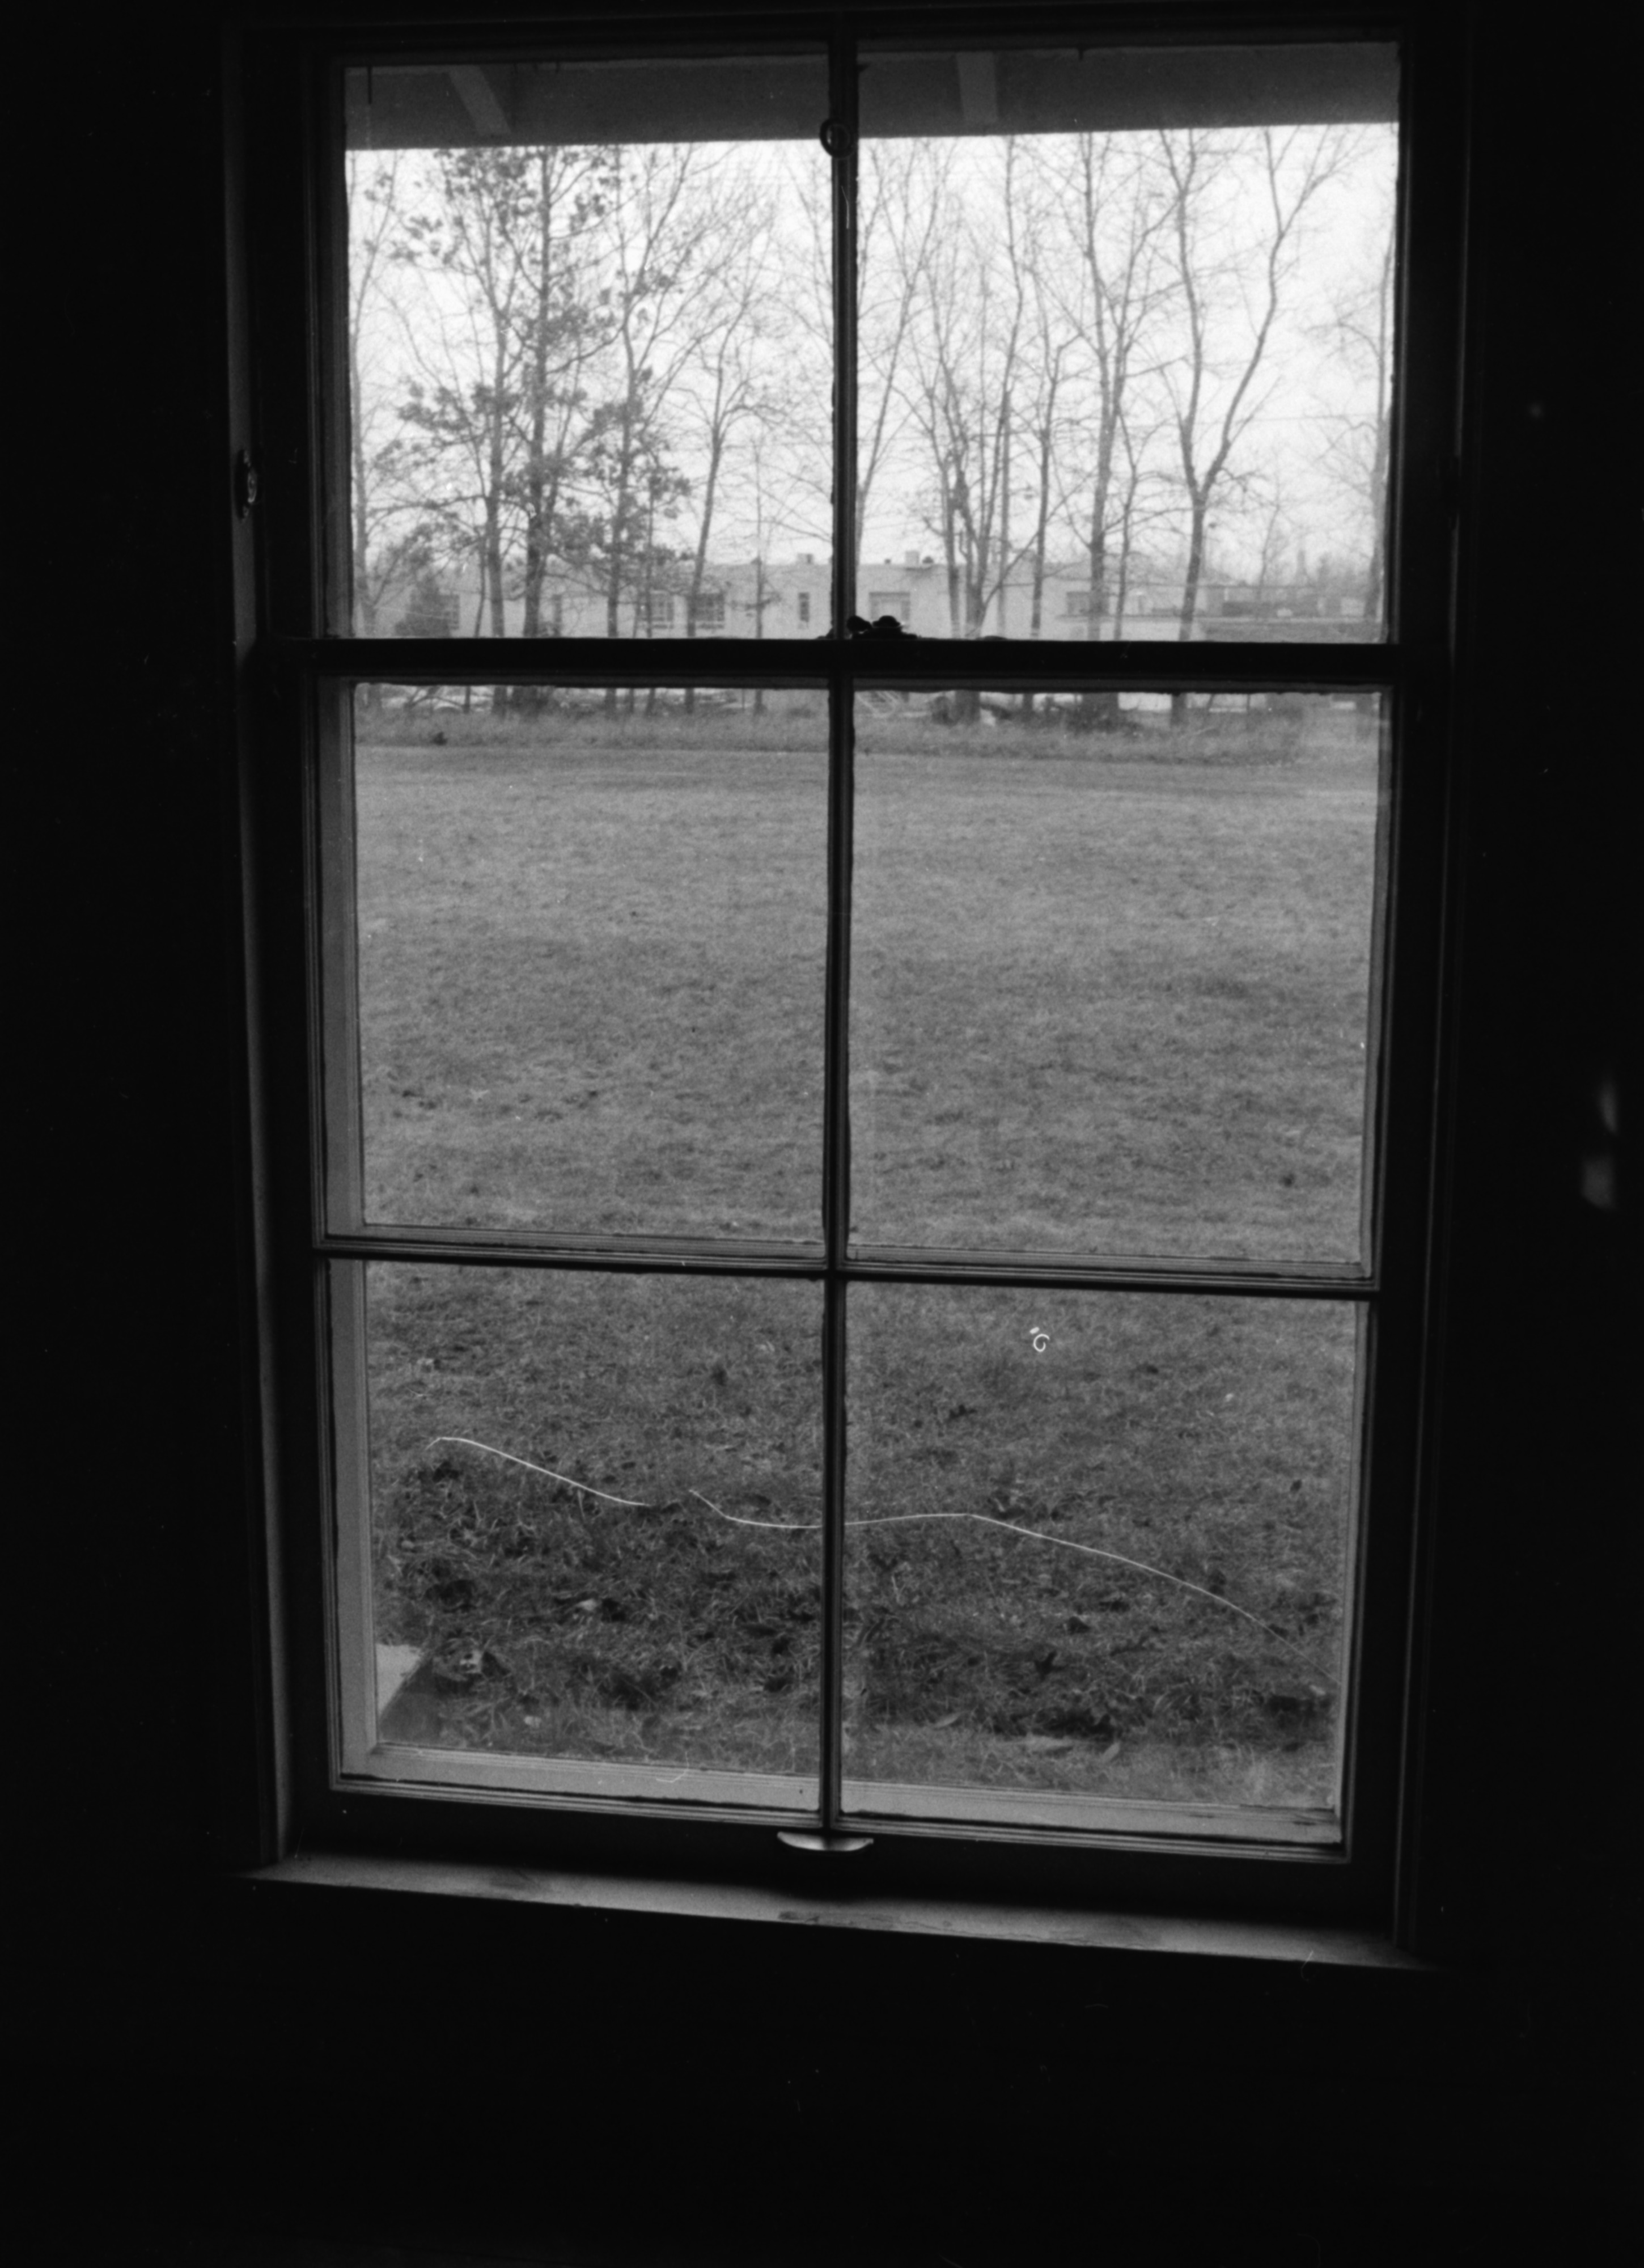 View of Cracked Window Pane at Pittsfield Village, 1983 image